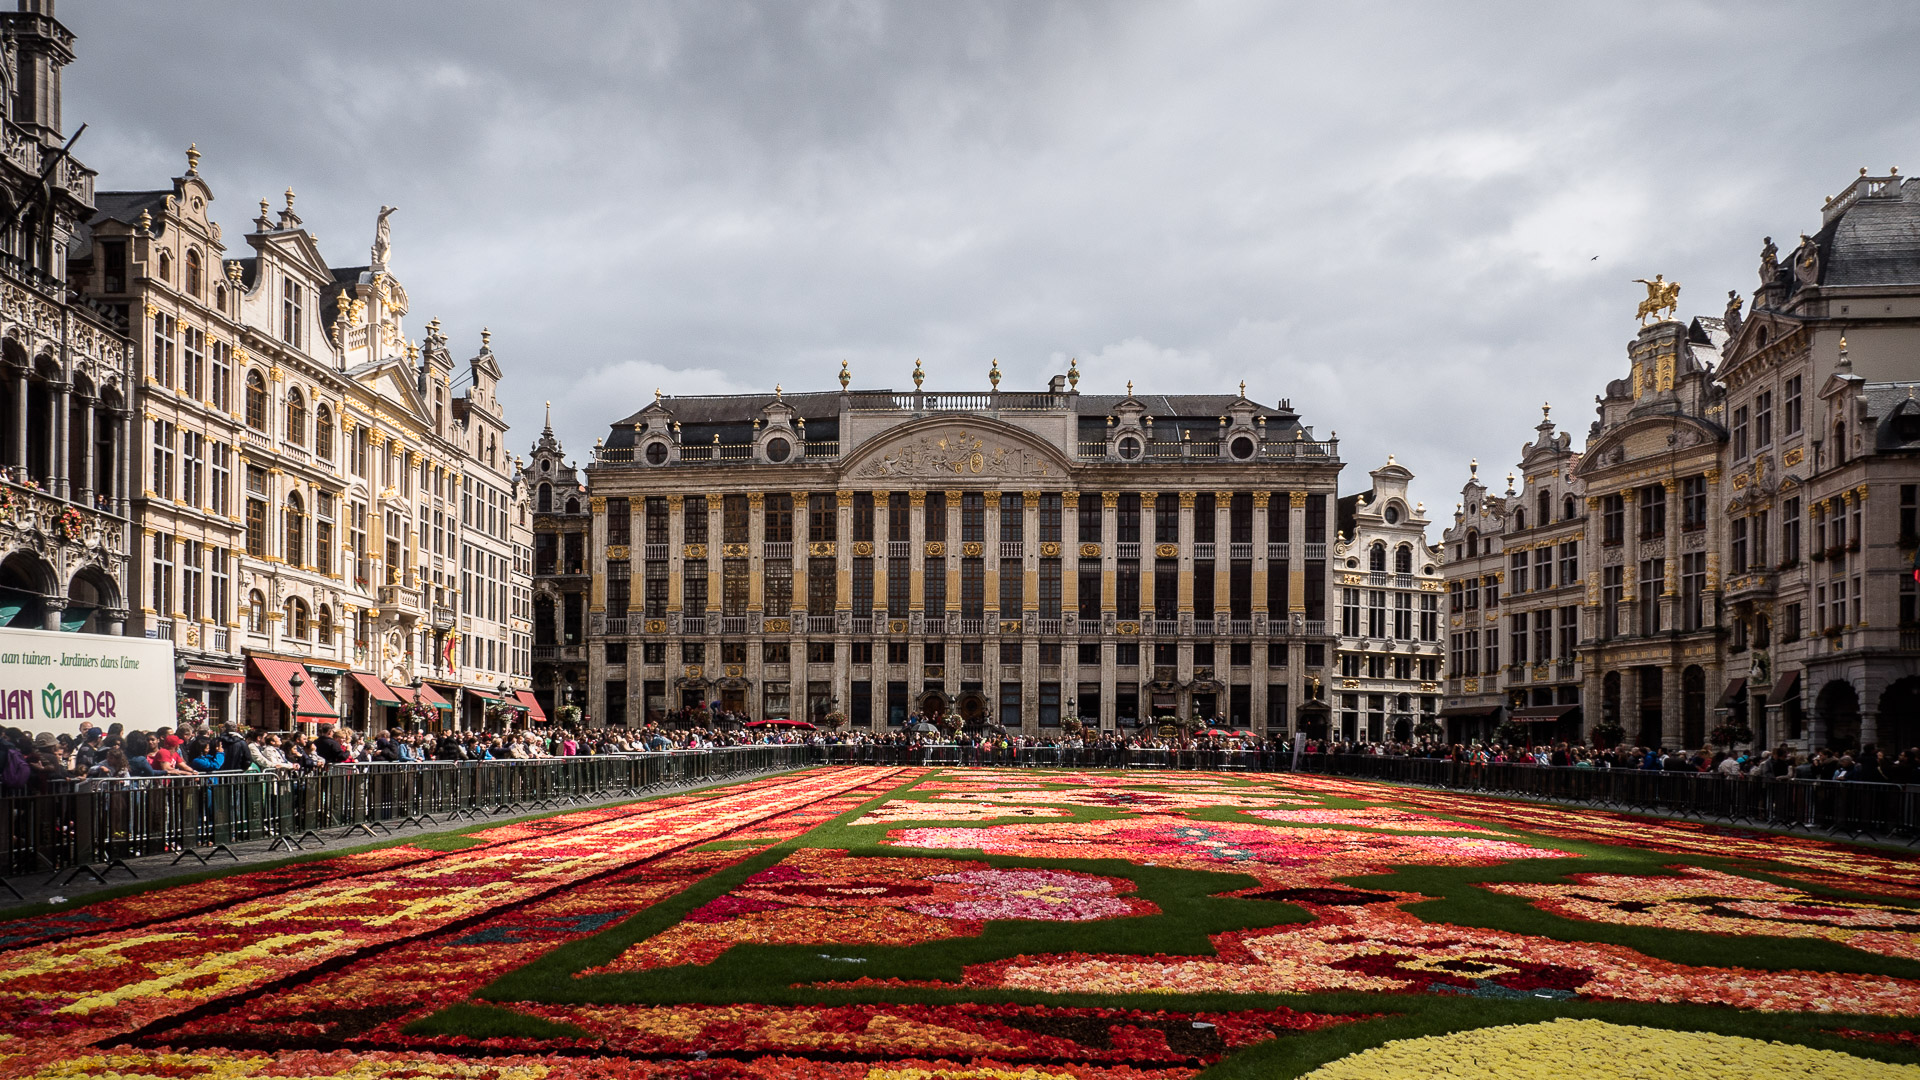 The Grand Place and the Flower Carpet